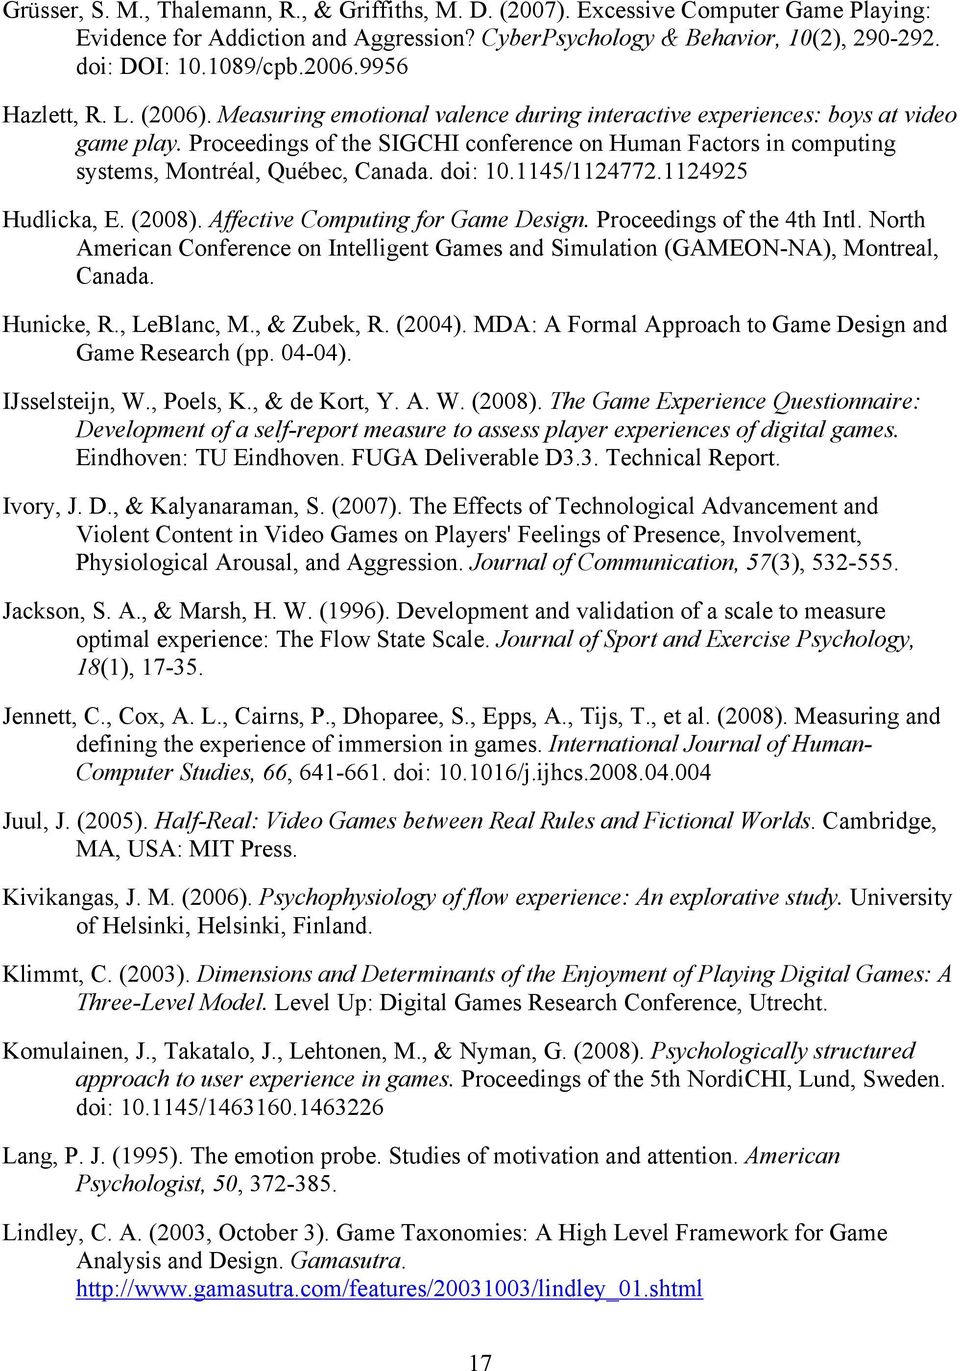 Proceedings of the SIGCHI conference on Human Factors in computing systems, Montréal, Québec, Canada. doi: 10.1145/1124772.1124925 Hudlicka, E. (2008). Affective Computing for Game Design.